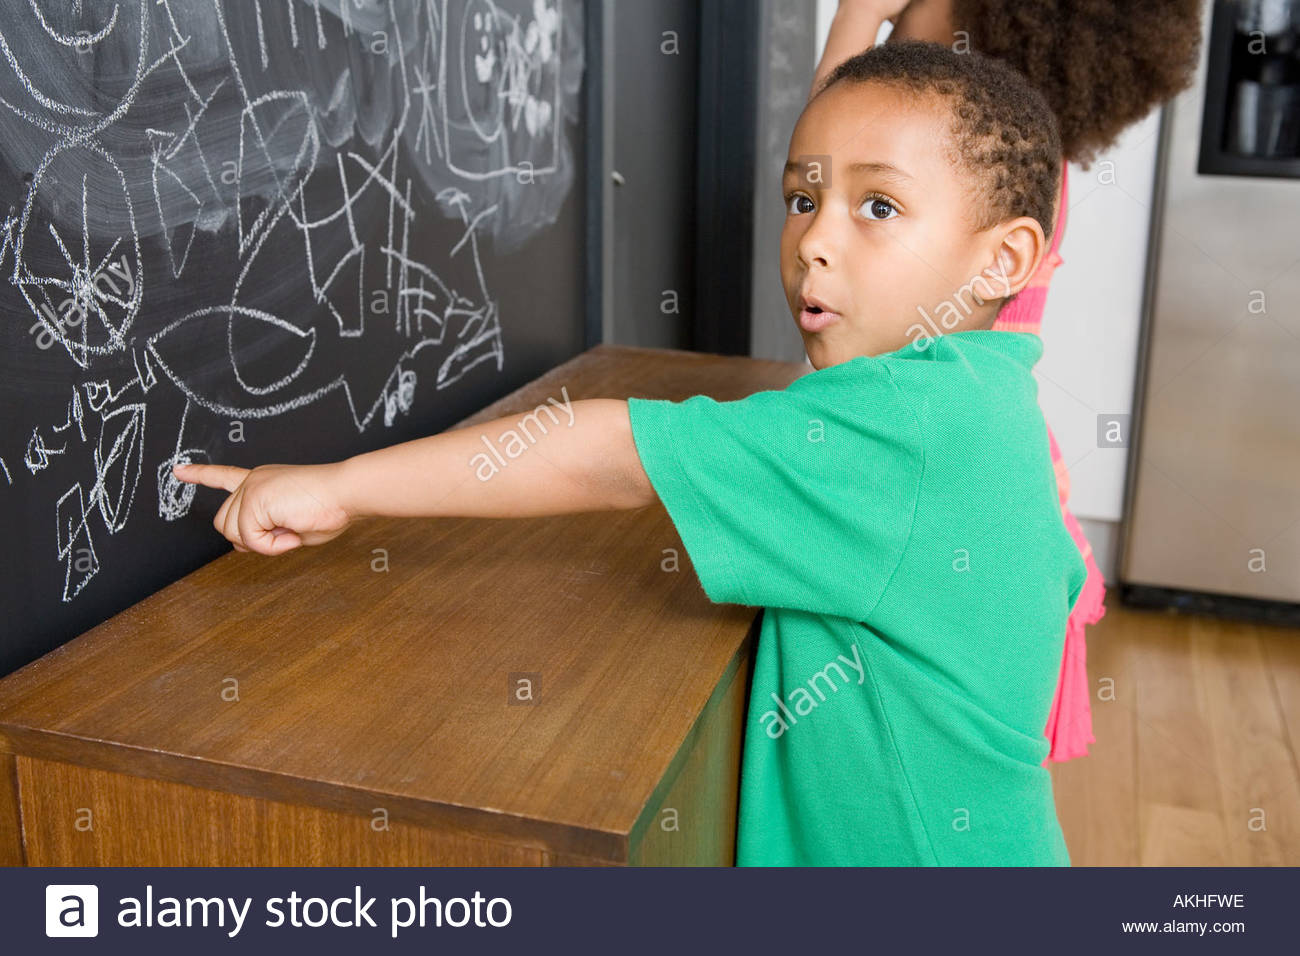 Boy pointing to drawing on blackboard - Stock Image